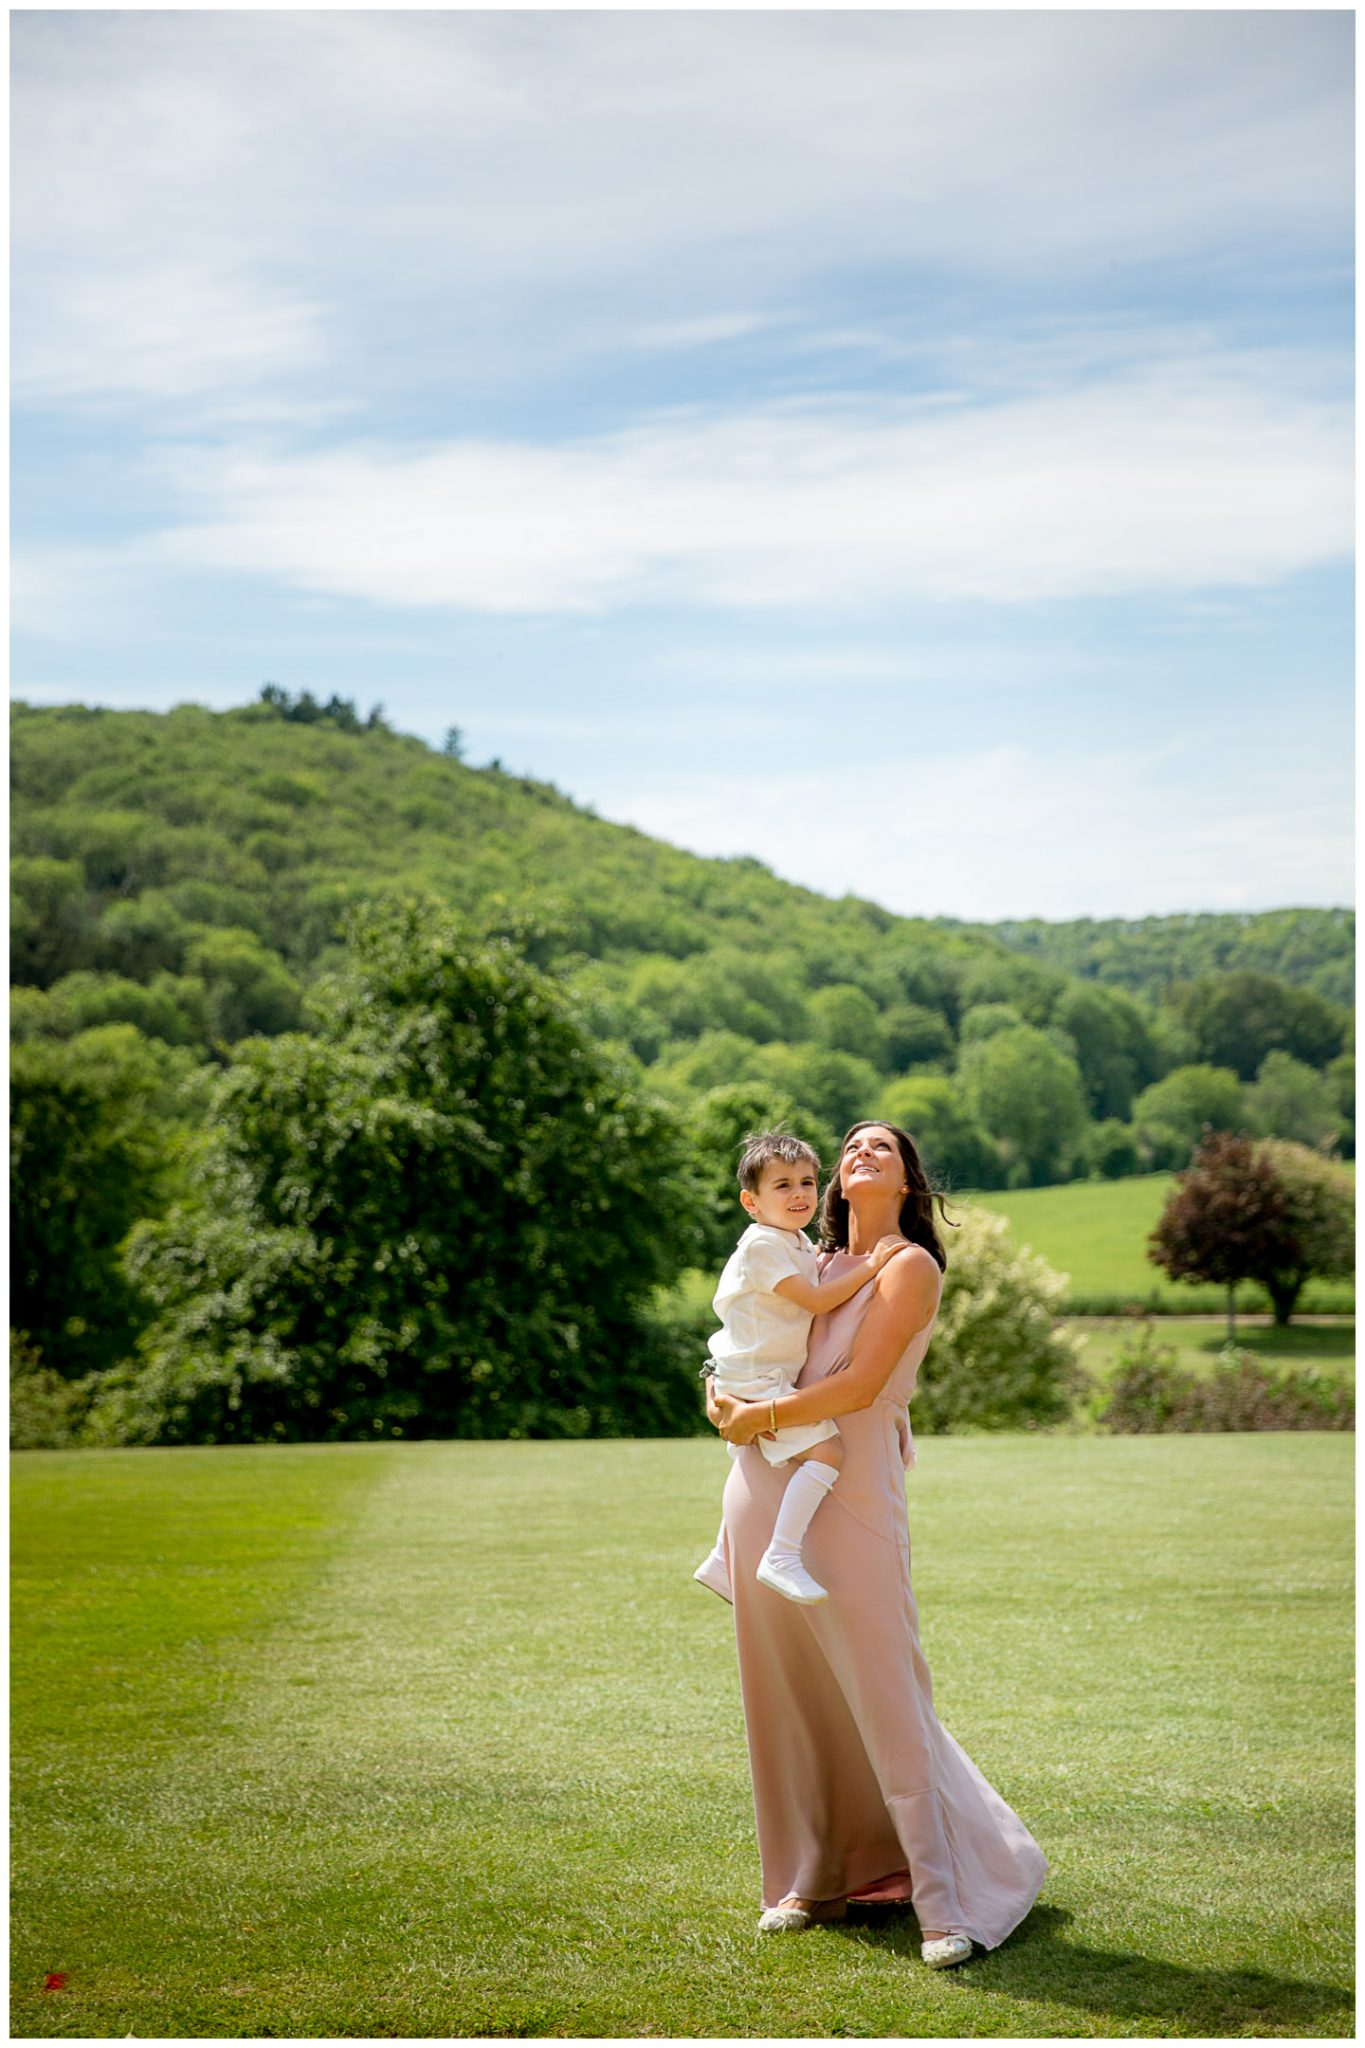 A bridesmaid and age boy admire the view across the Dorset countryside